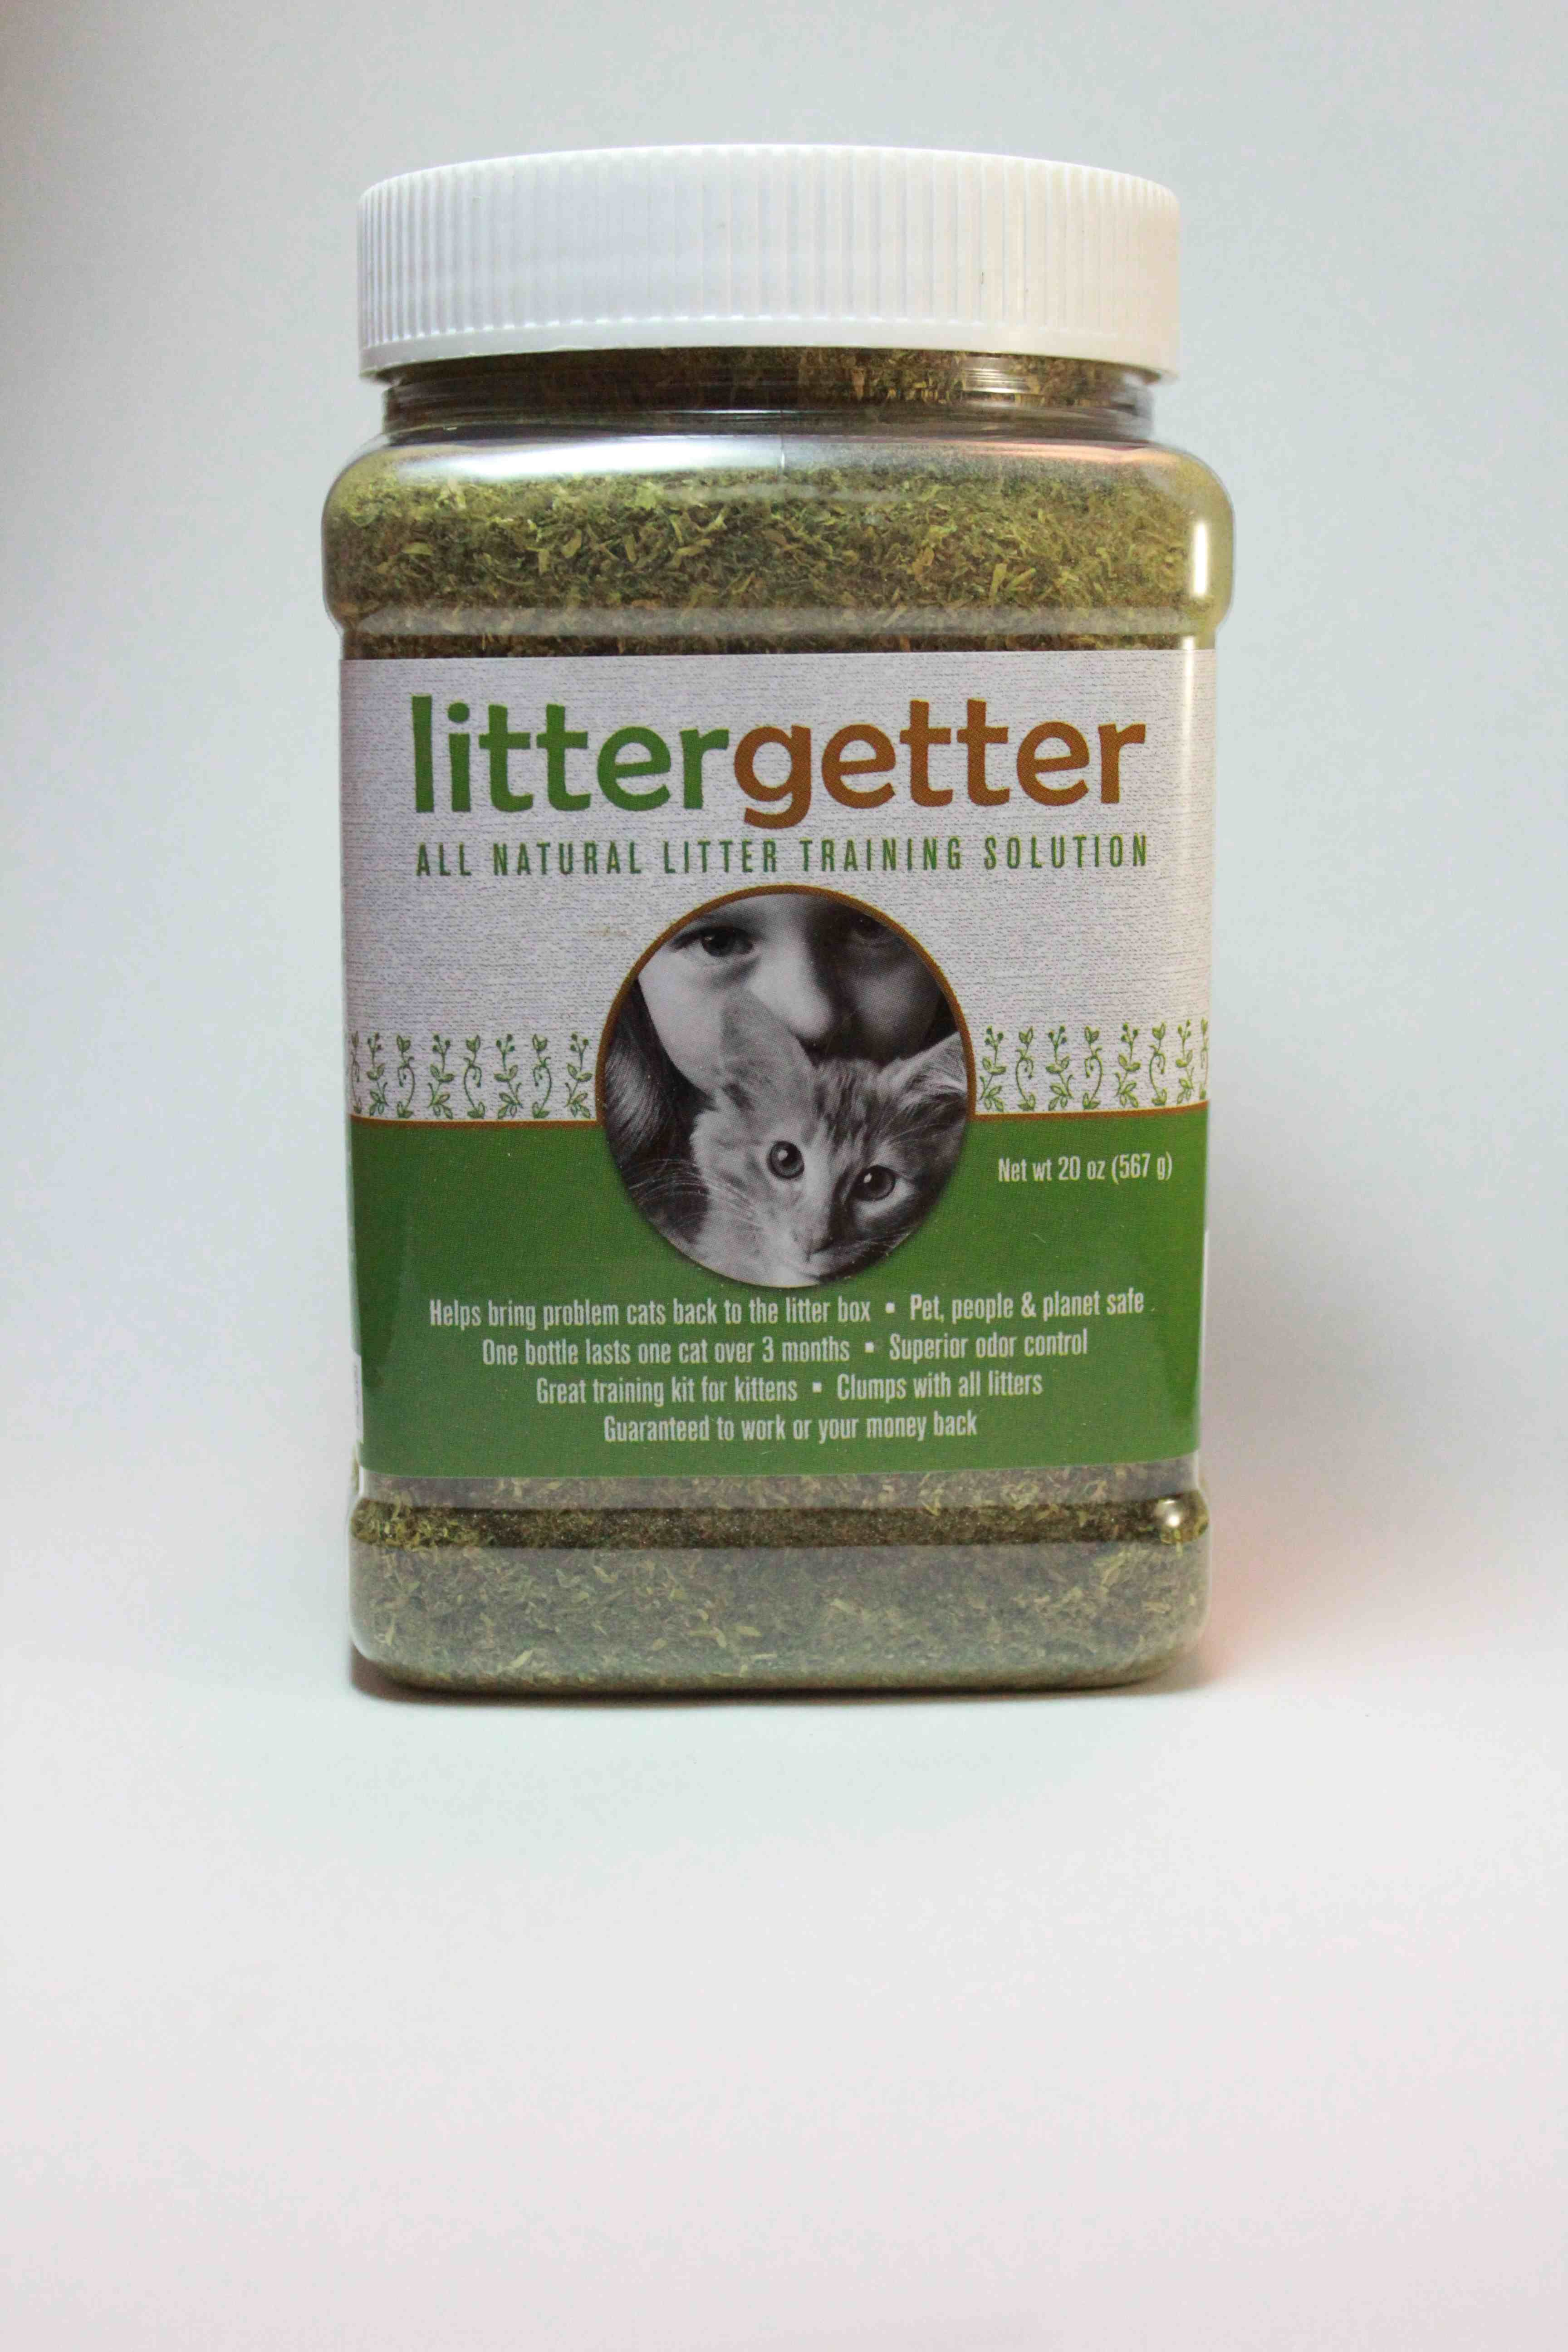 Litter Getter is an allnatural mixture of herbs and plant